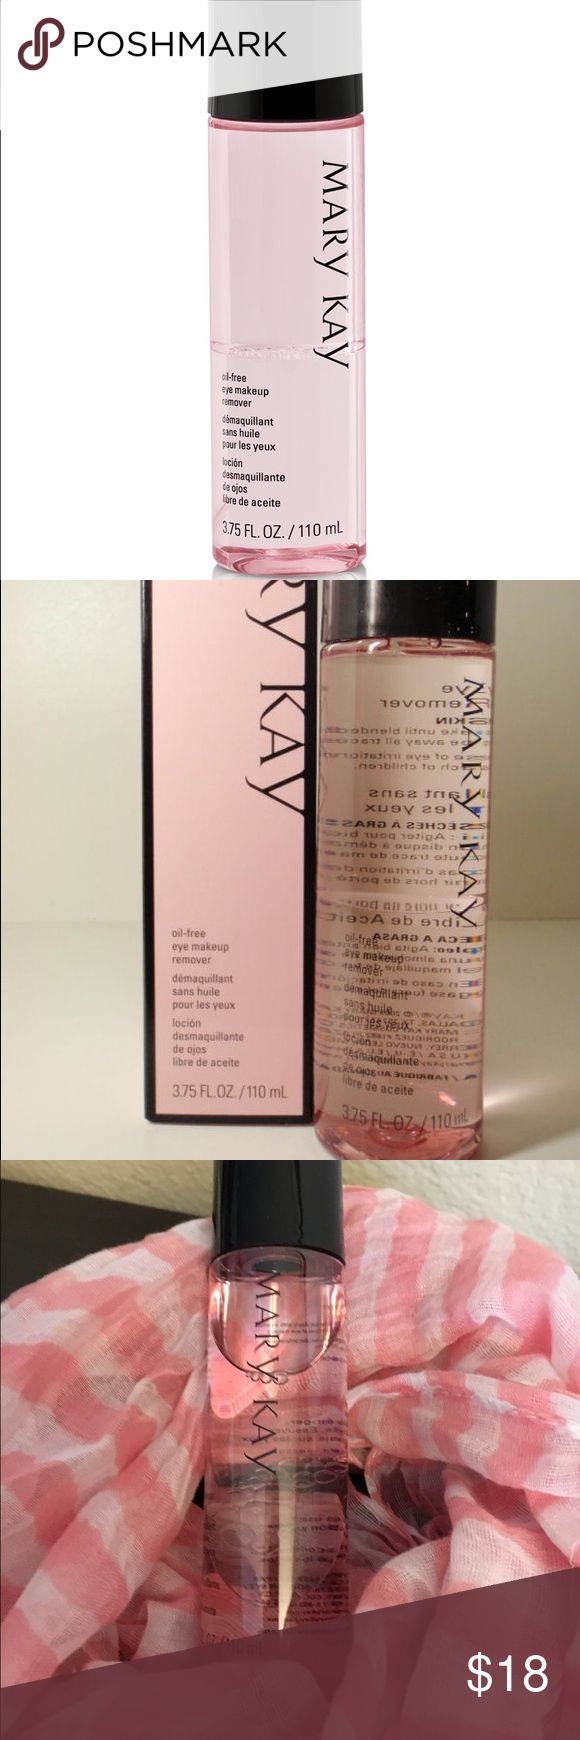 Mary Kay oil-free eye makeup remover NEW (no box) Mary Kay oil-free eye makeup remover. Buy as a set and save!!  Eye Makeup Remover for $18, Moisturizer and 3-in-1 Cleanser for $35, Moisturizer, Cleanser and Eye Makeup Remover for $50 Mary Kay Makeup